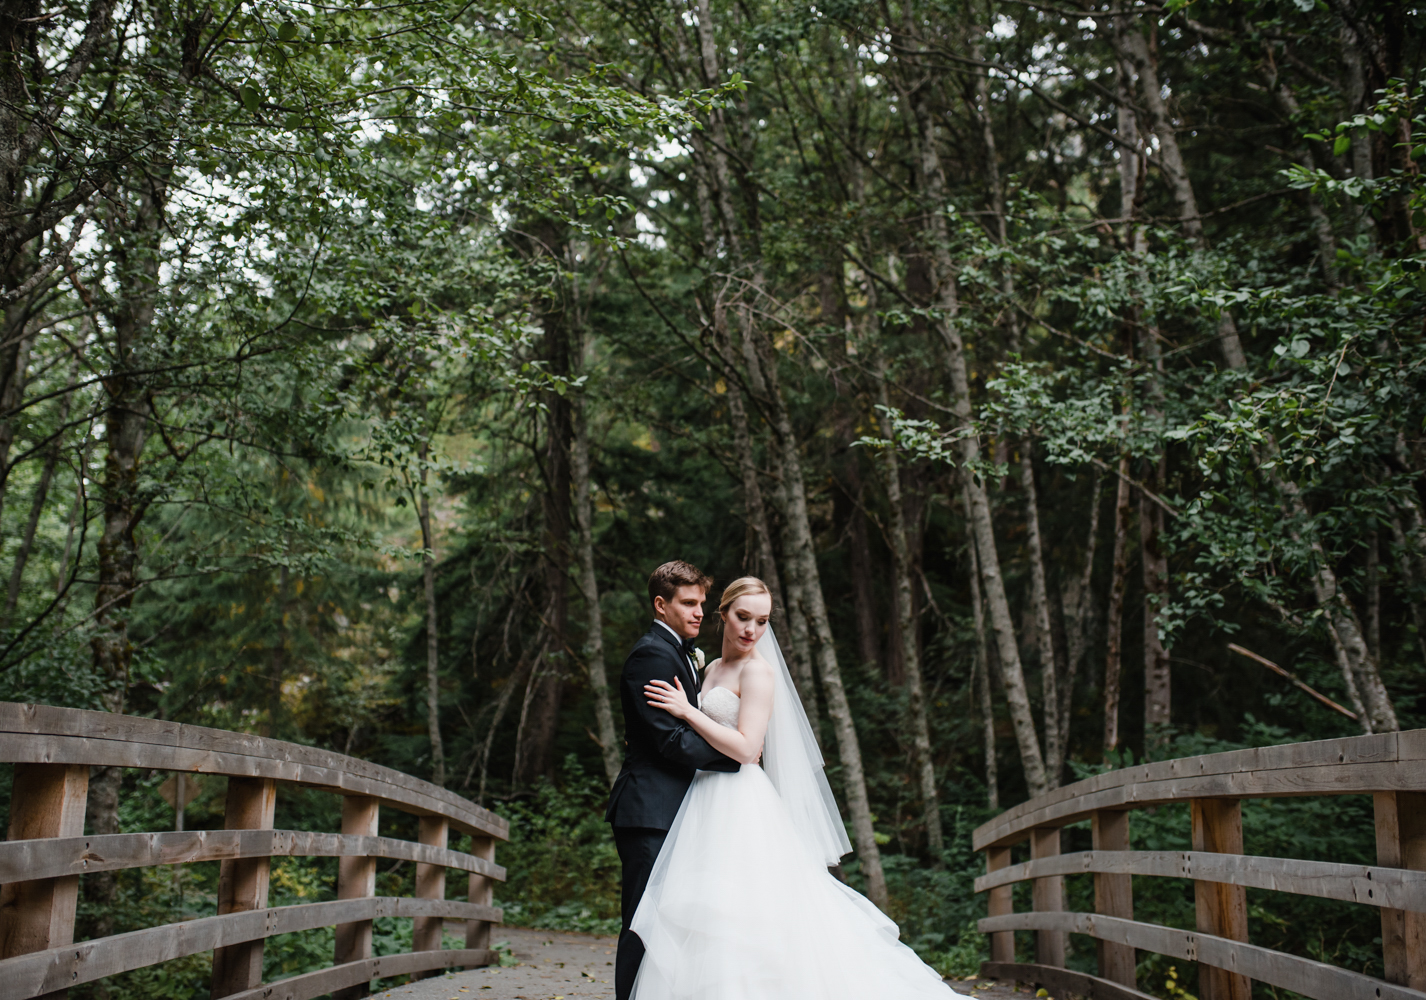 Nitalake wedding95.jpg